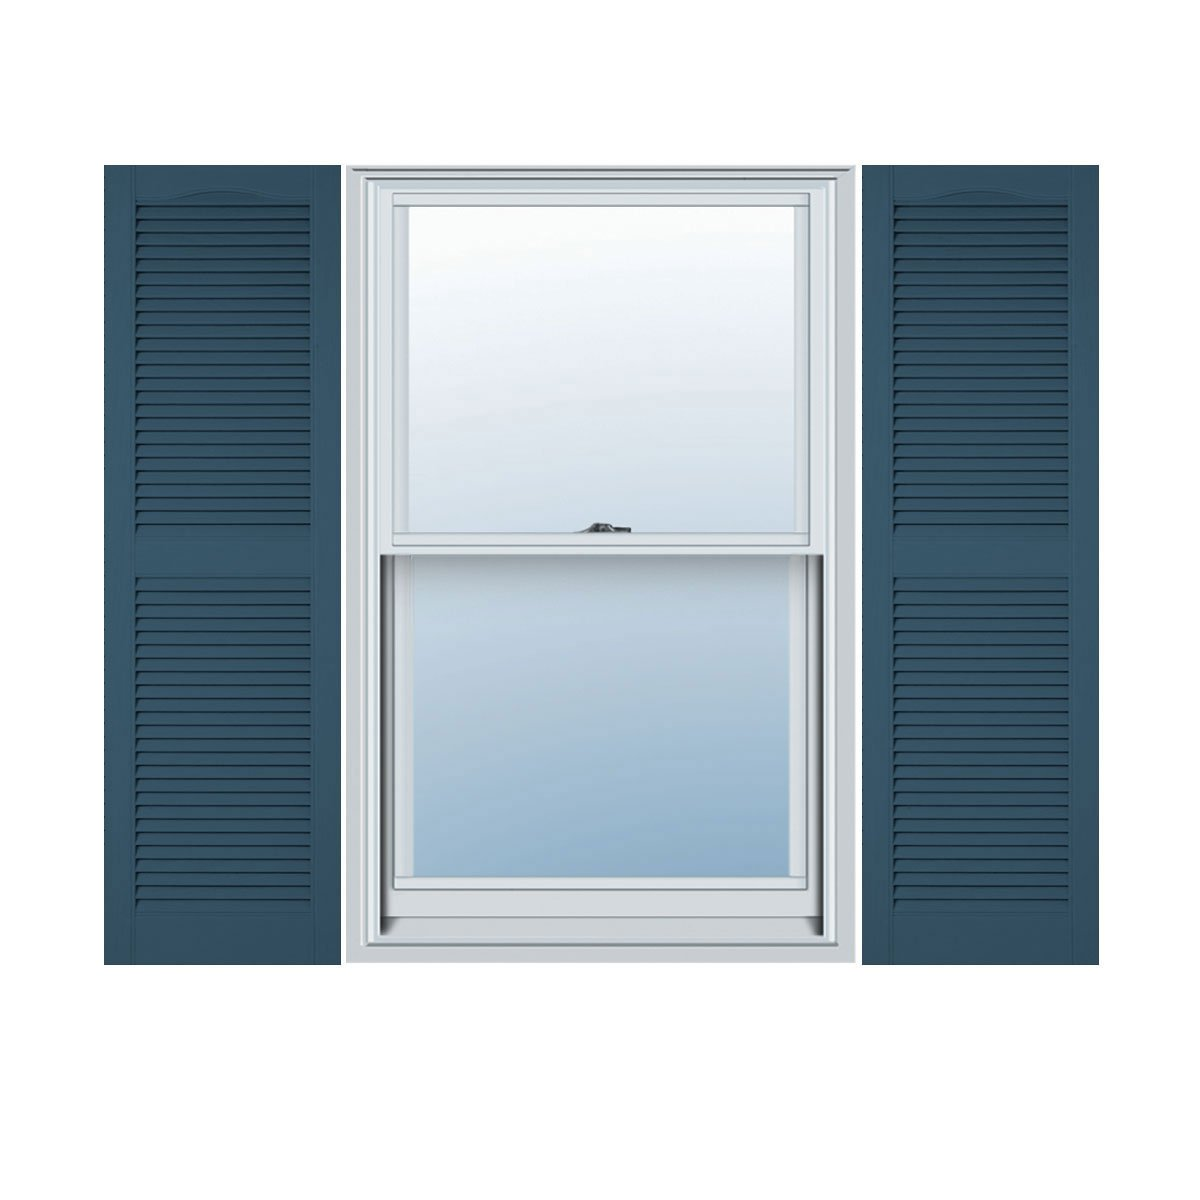 12''W x 64''H Standard Size Cathedral Open Louver Shutter, w/Installation Shutter-Lok's, 036 - Classic Blue